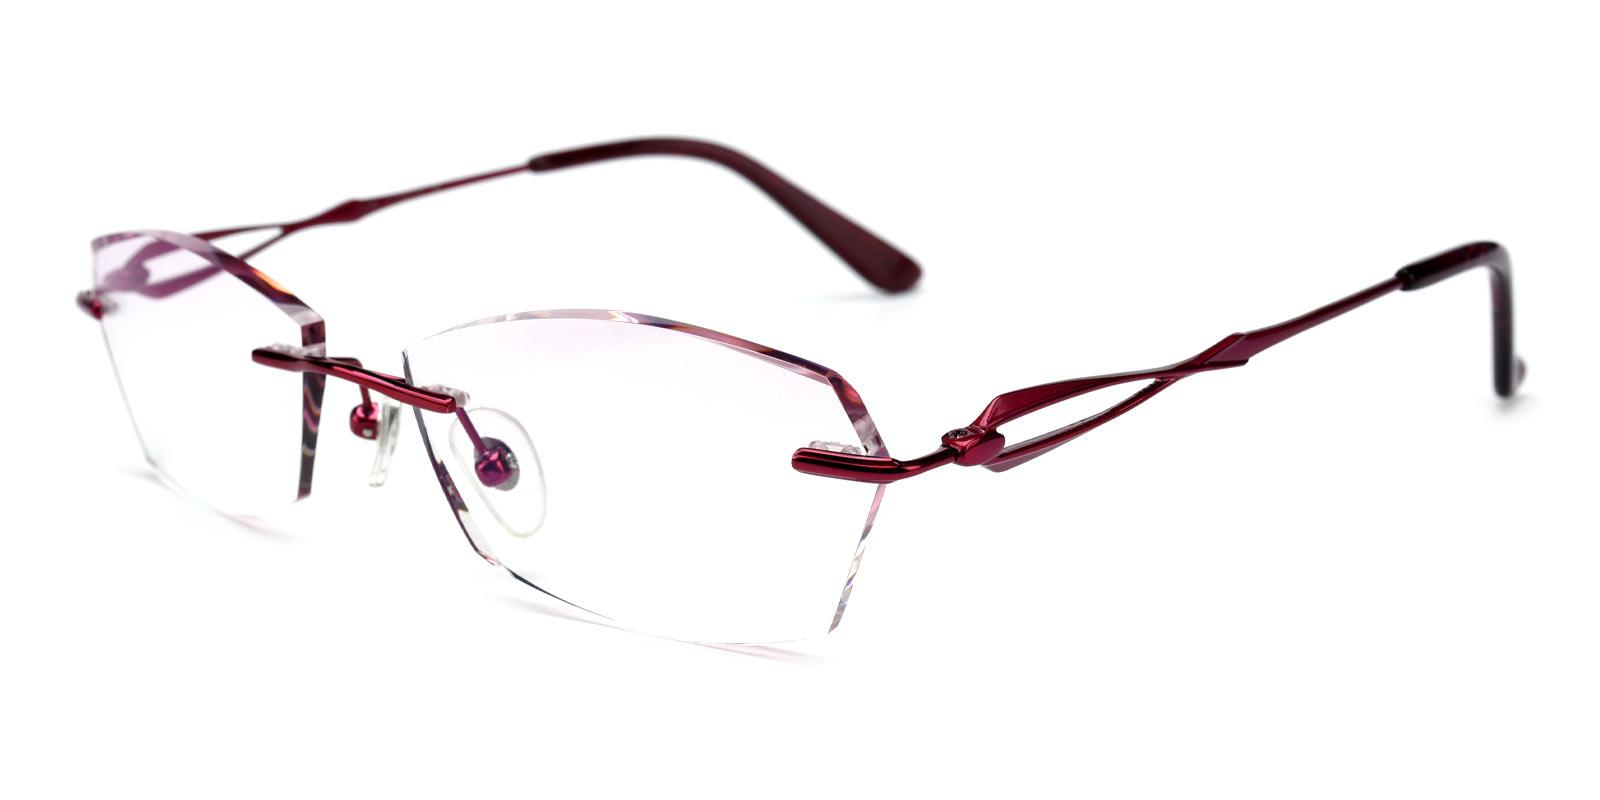 Linden-Red-Varieties-Titanium-Eyeglasses-detail